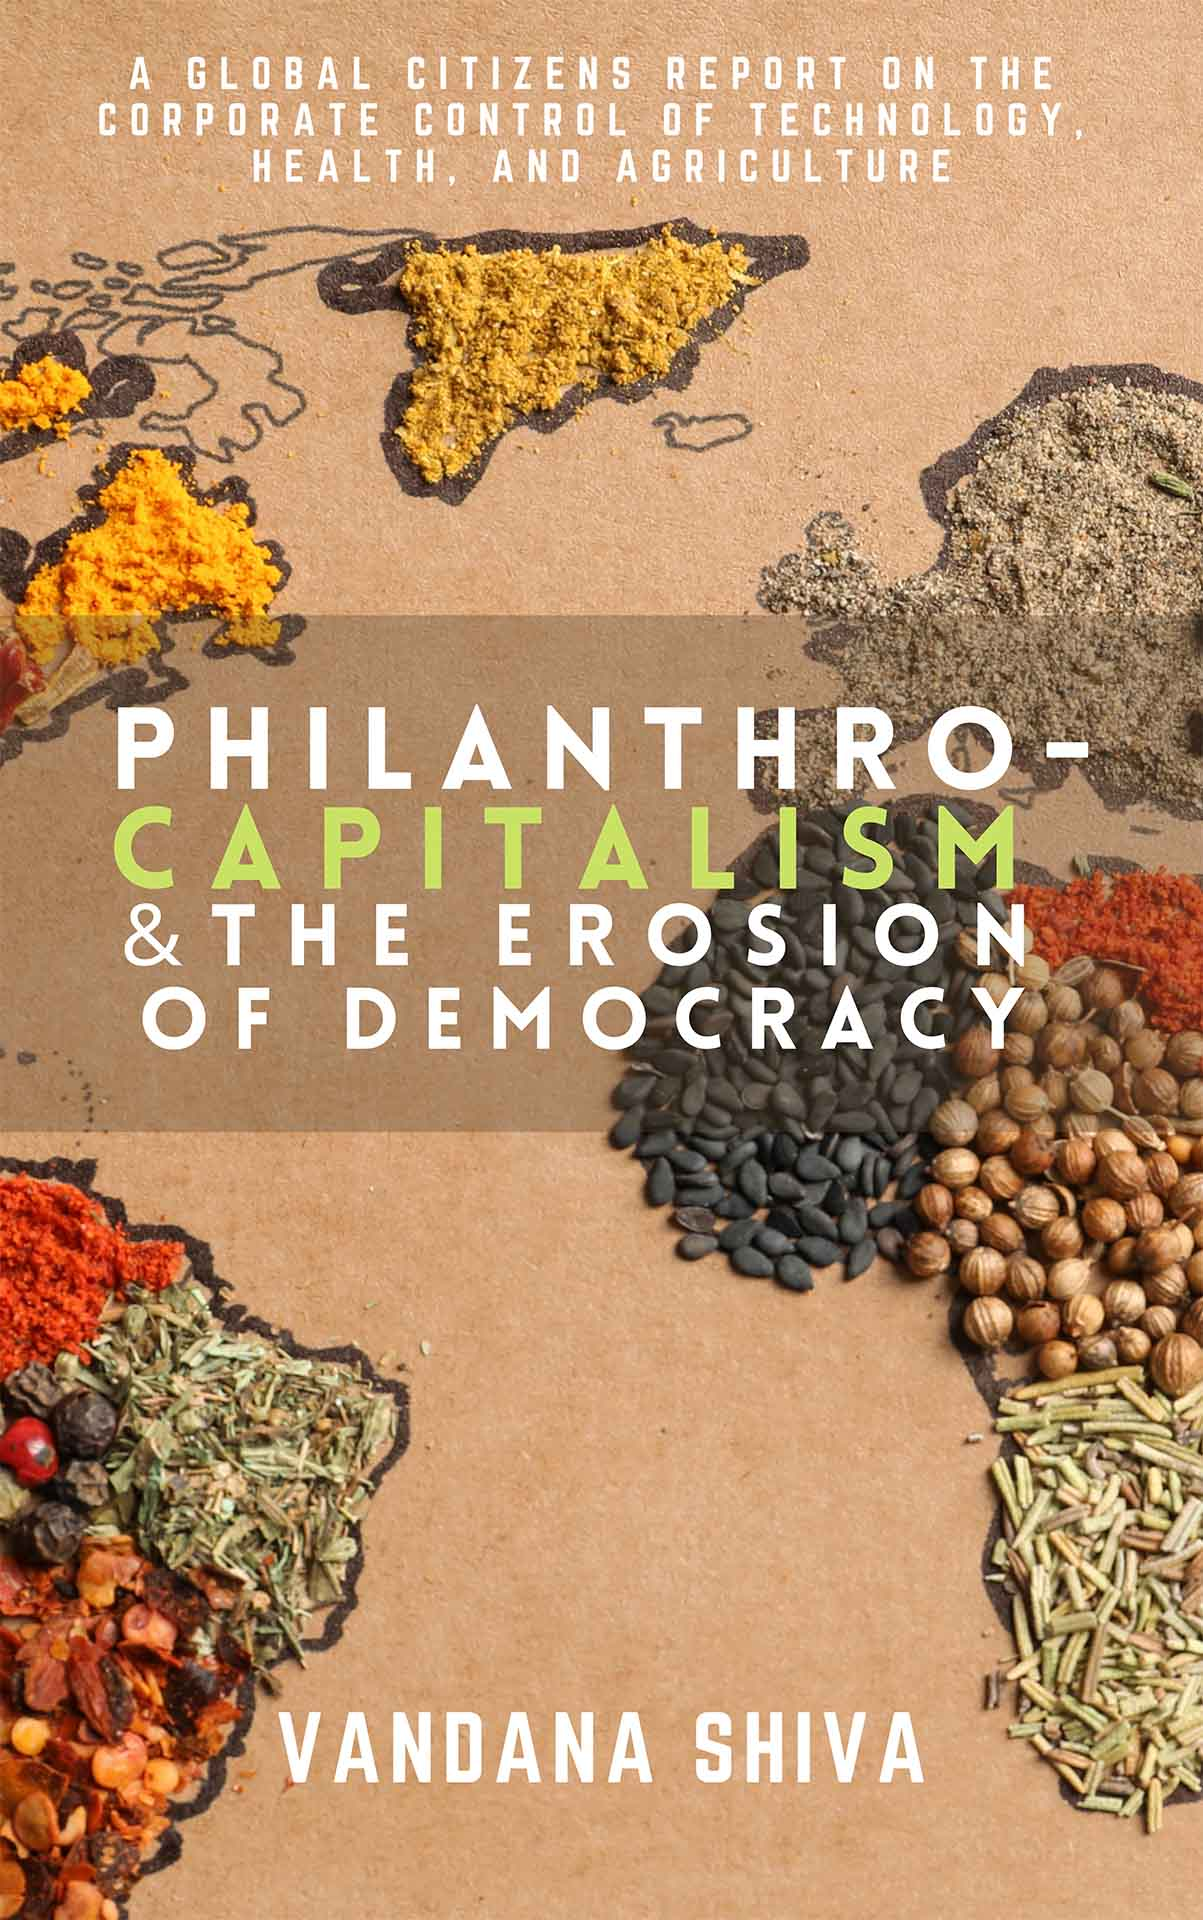 Philanthrocapitalism and the Erosion of Democracy: A Global Citizens Report on the Corporate Control of Technology, Health, and Agriculture